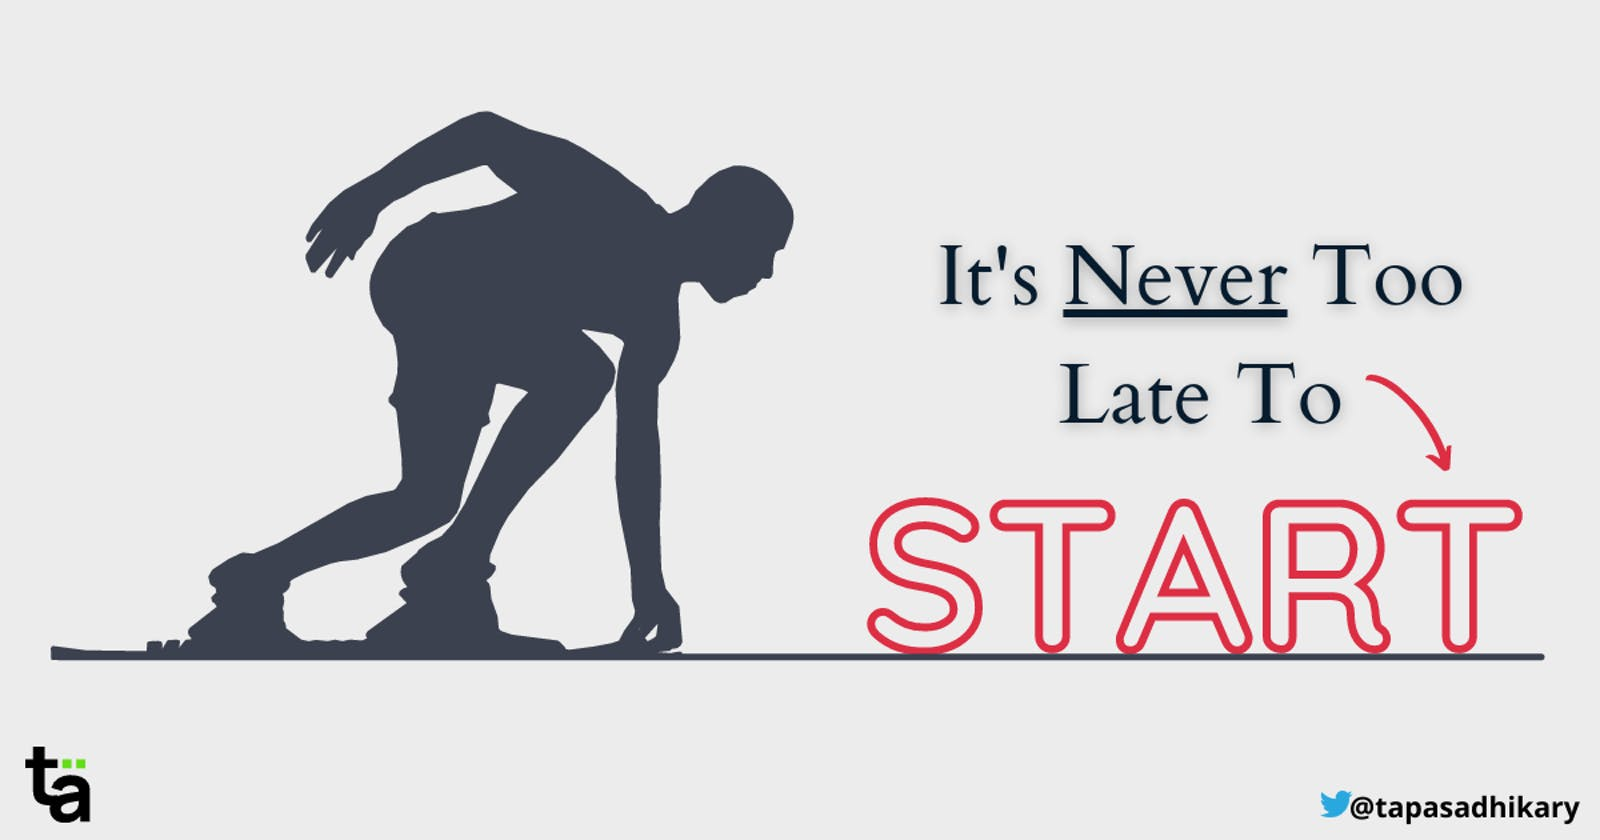 It's Never too late to START 🚀 when you STOP 🛑 doing these